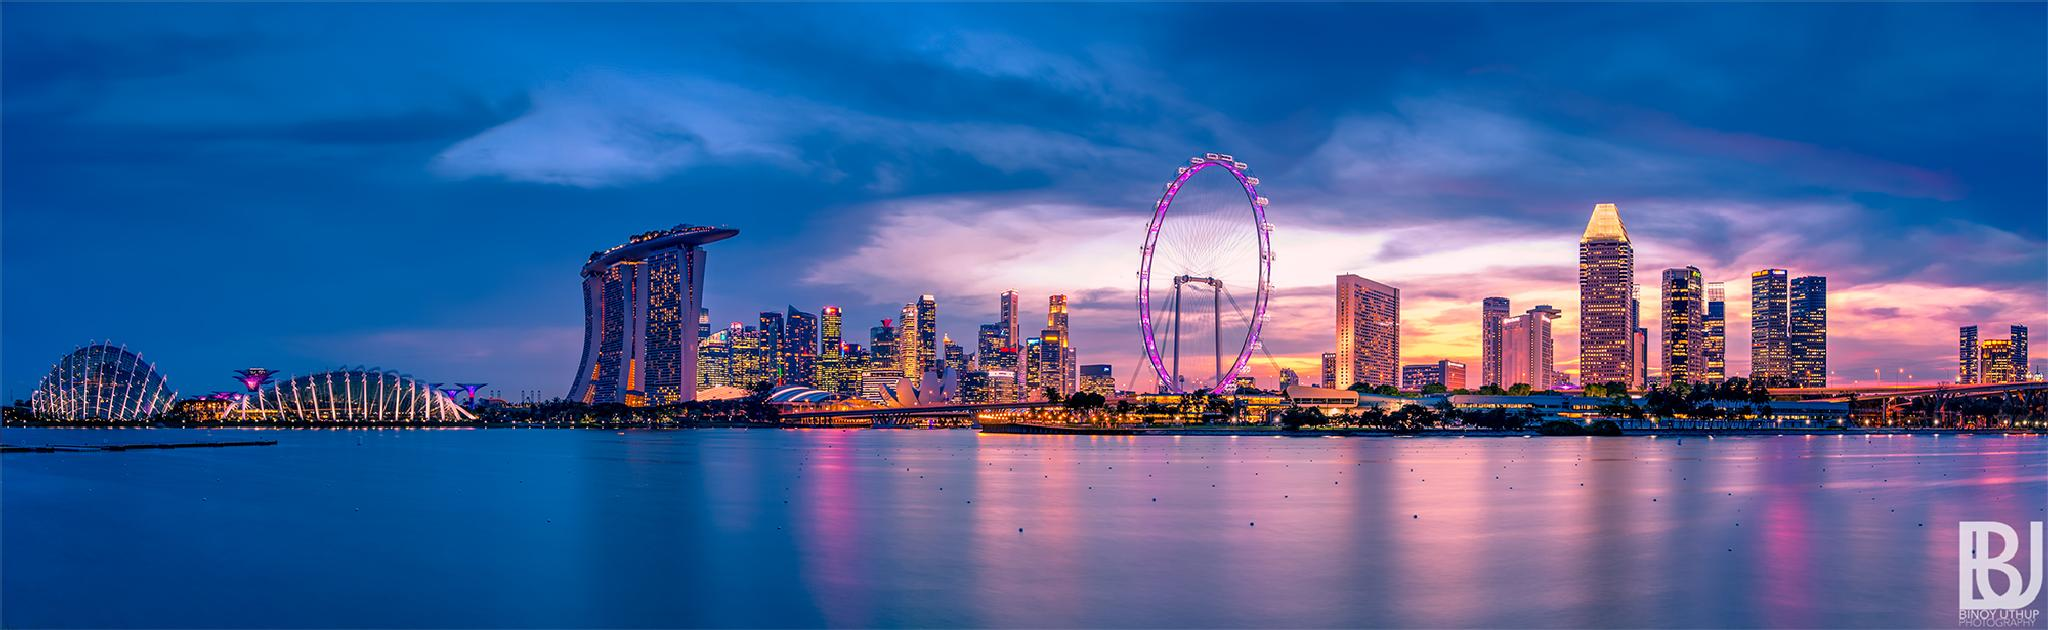 The Beauty of Lion City by binoyuthup